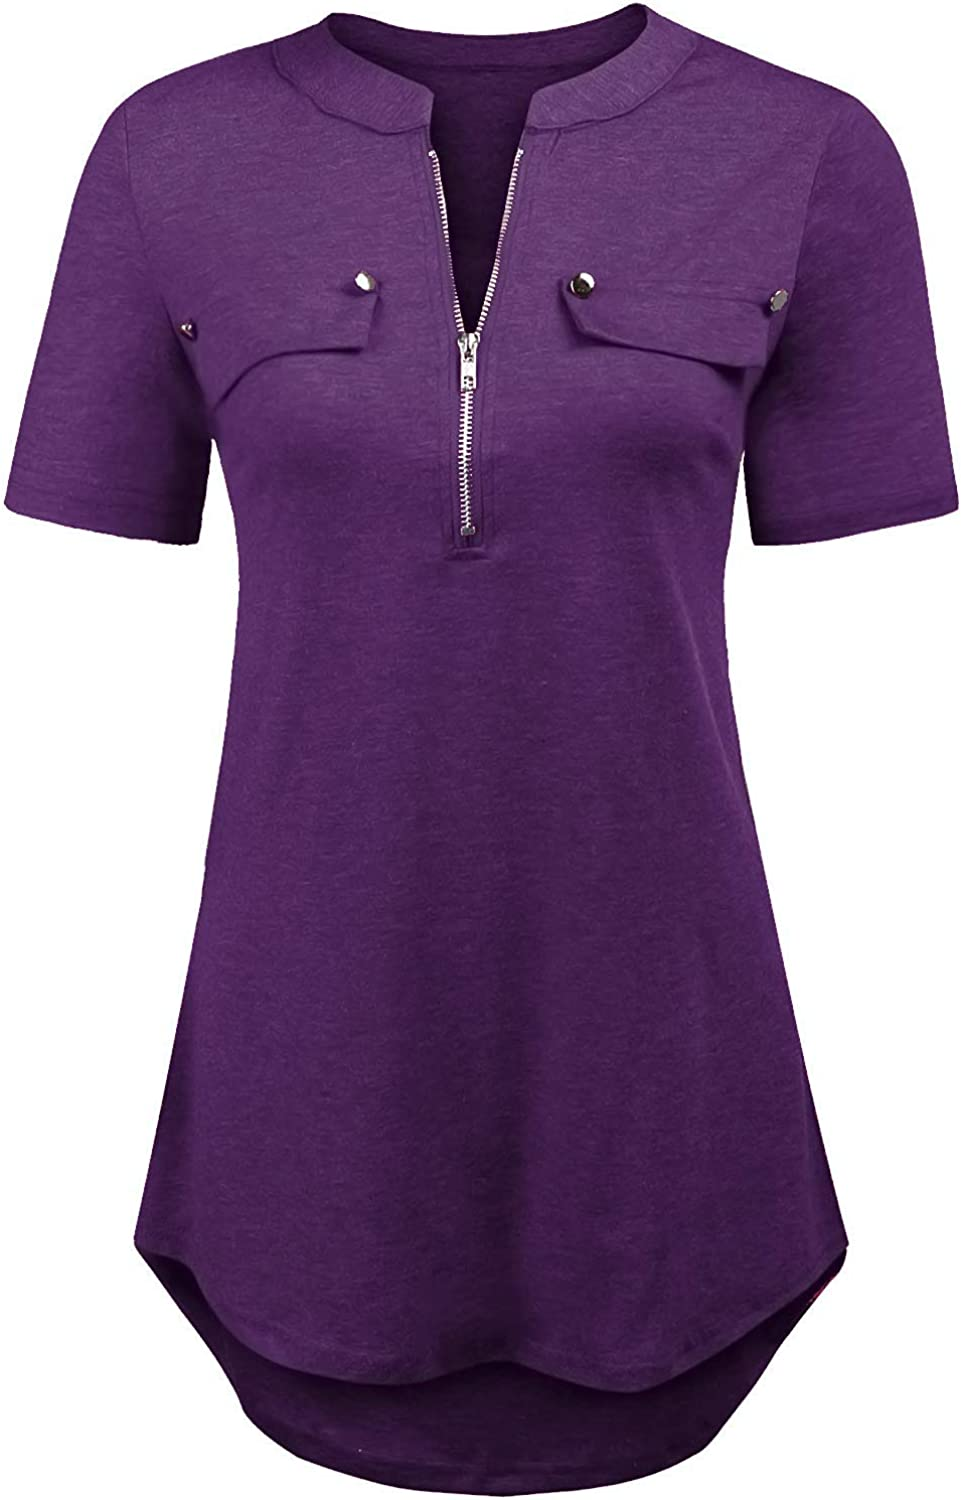 LuckyMore Women's Short Sleeve Zip Flowy Tunic Tops Business Casual Work Office Blouses Shirts